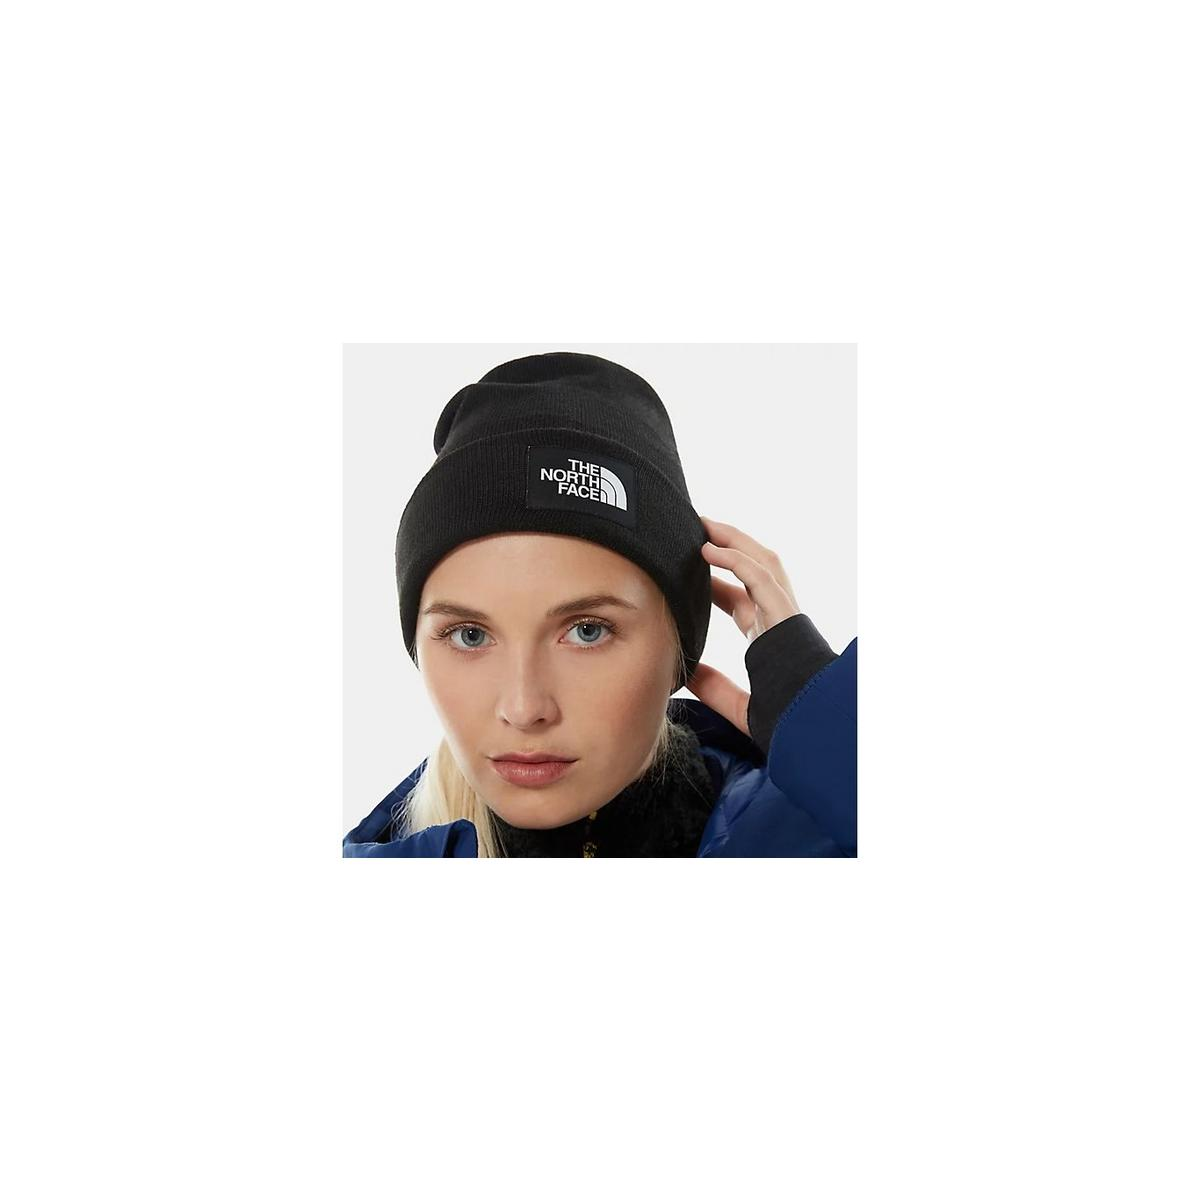 The North Face Dock Worker Recycled Beanie - Black